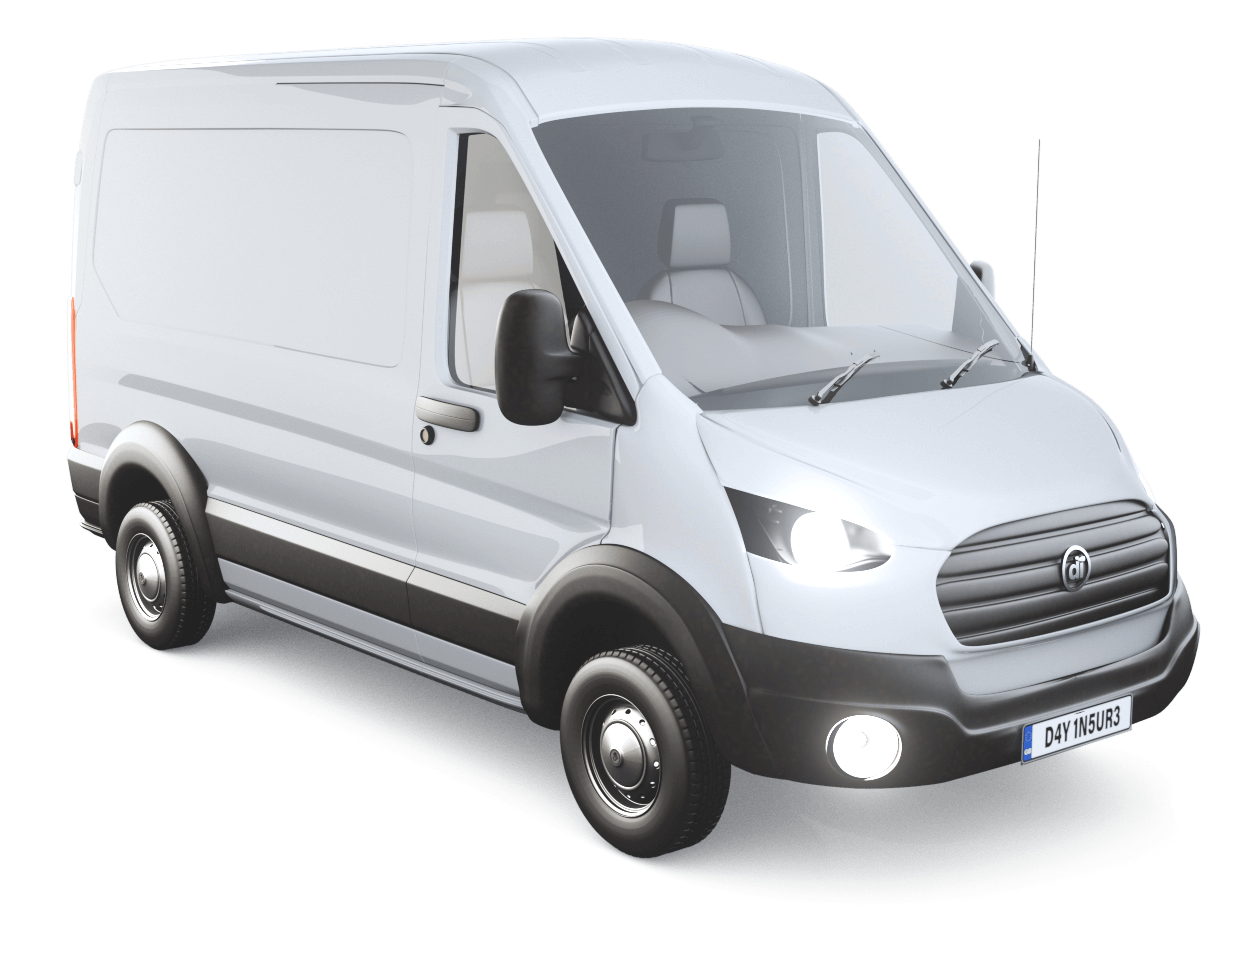 Dayinsure Business Van Insurance